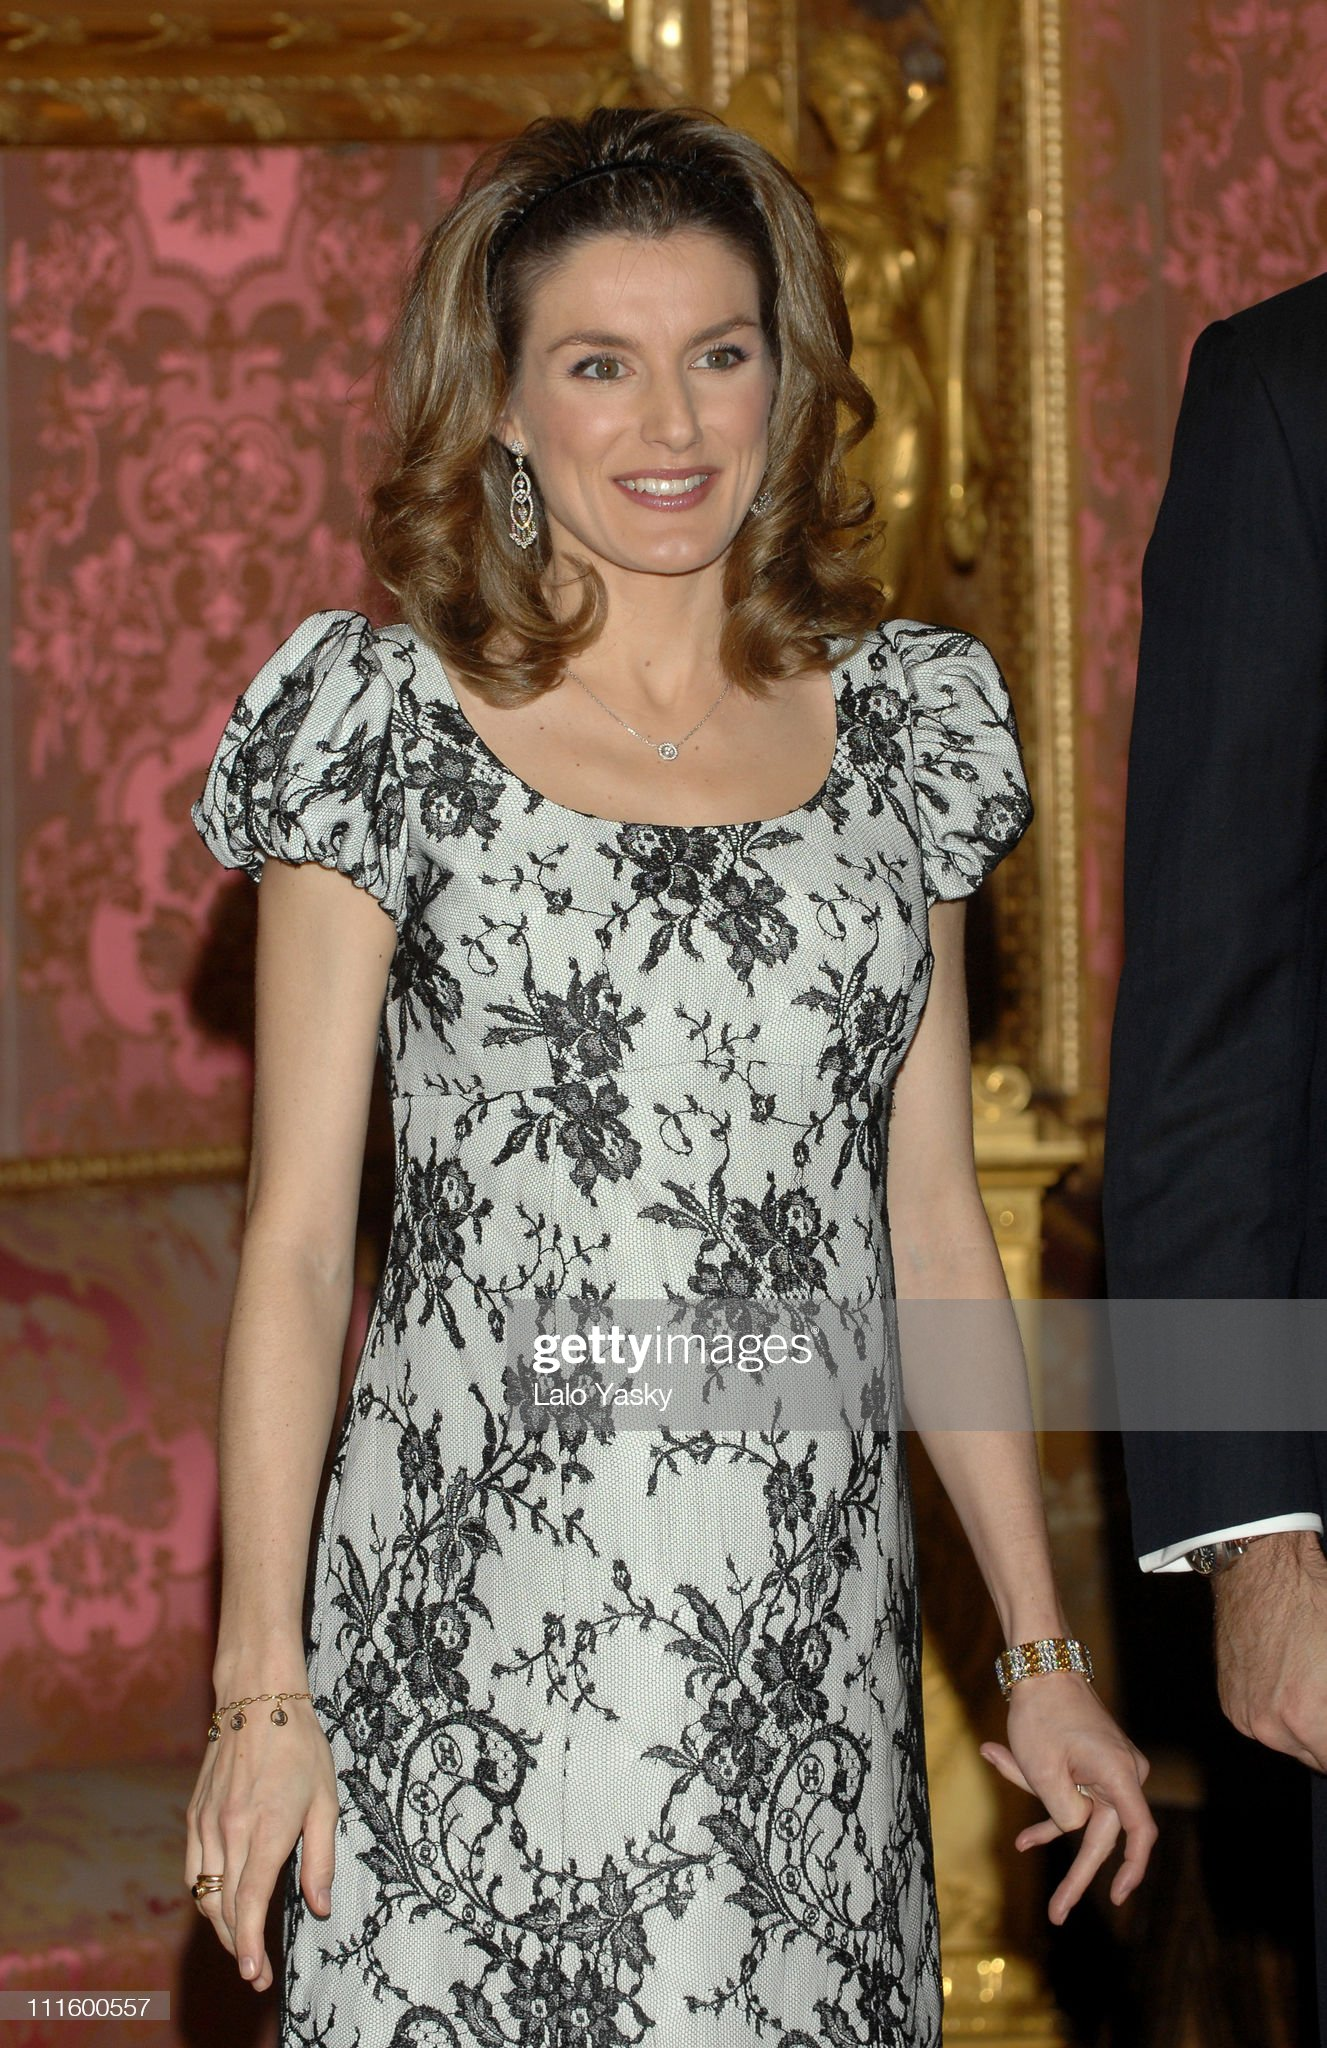 Spanish Royals Receive Mexican President - January 29, 2007 : News Photo